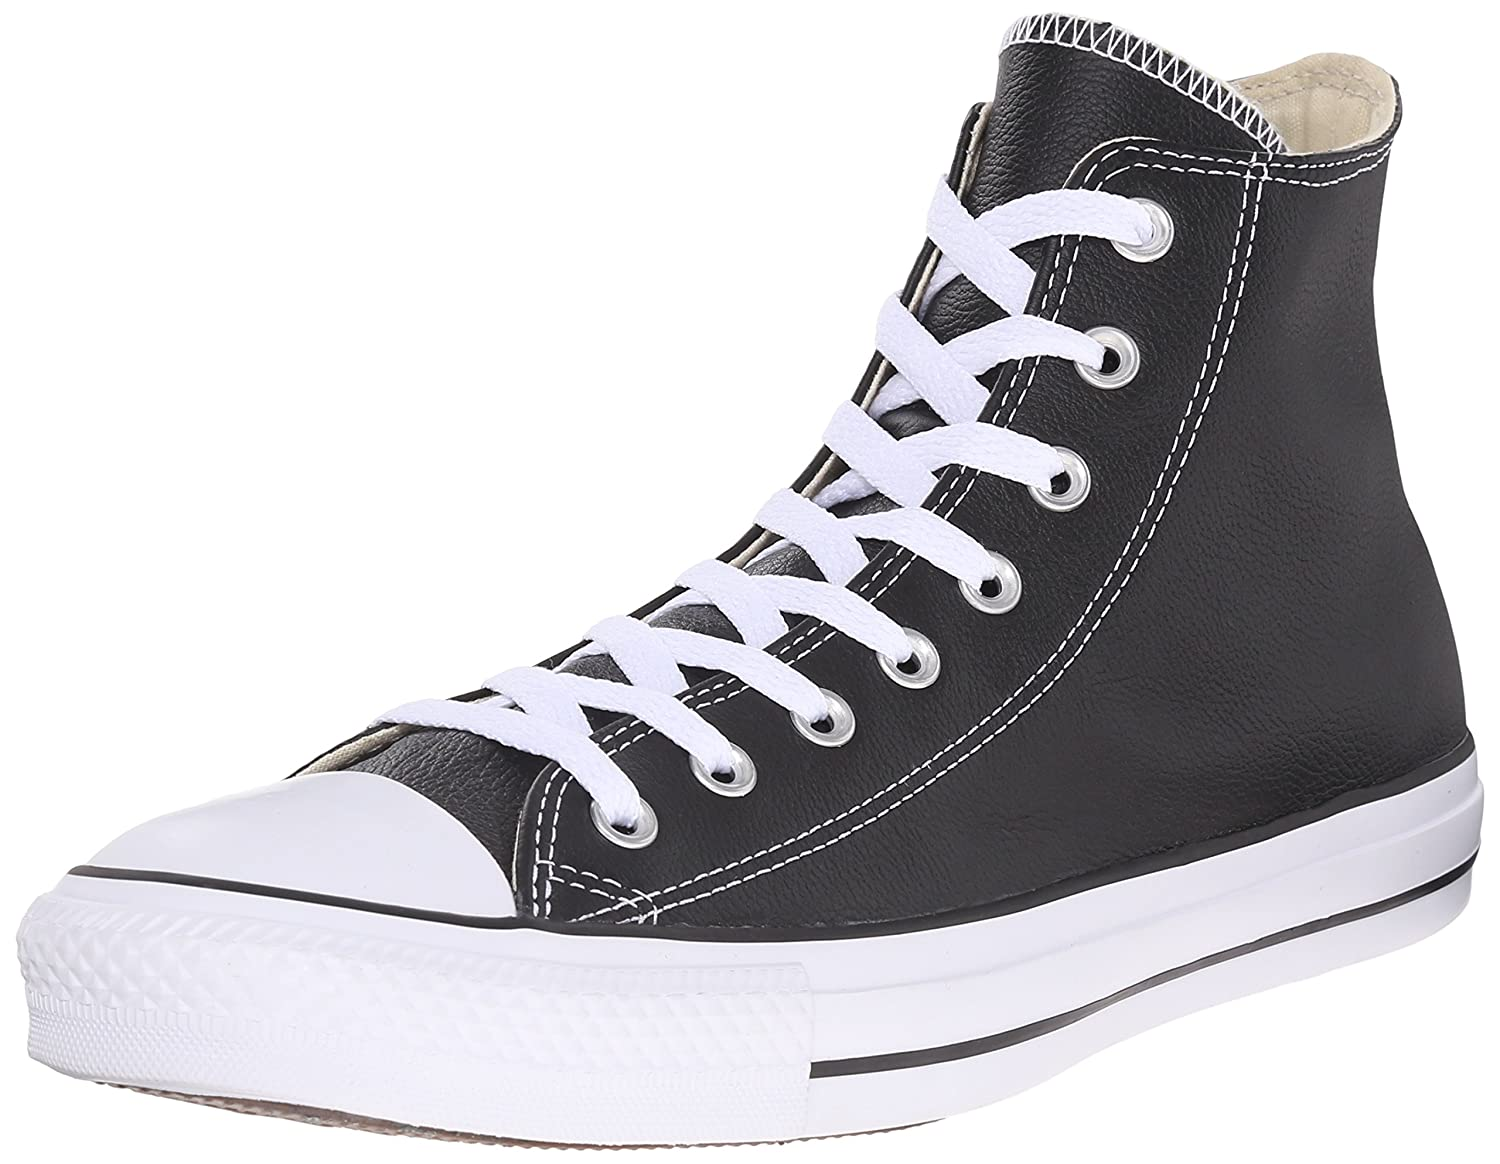 Converse Chuck Taylor All Star Leather High Top Sneaker B007PBF2OQ 6 M US|Black